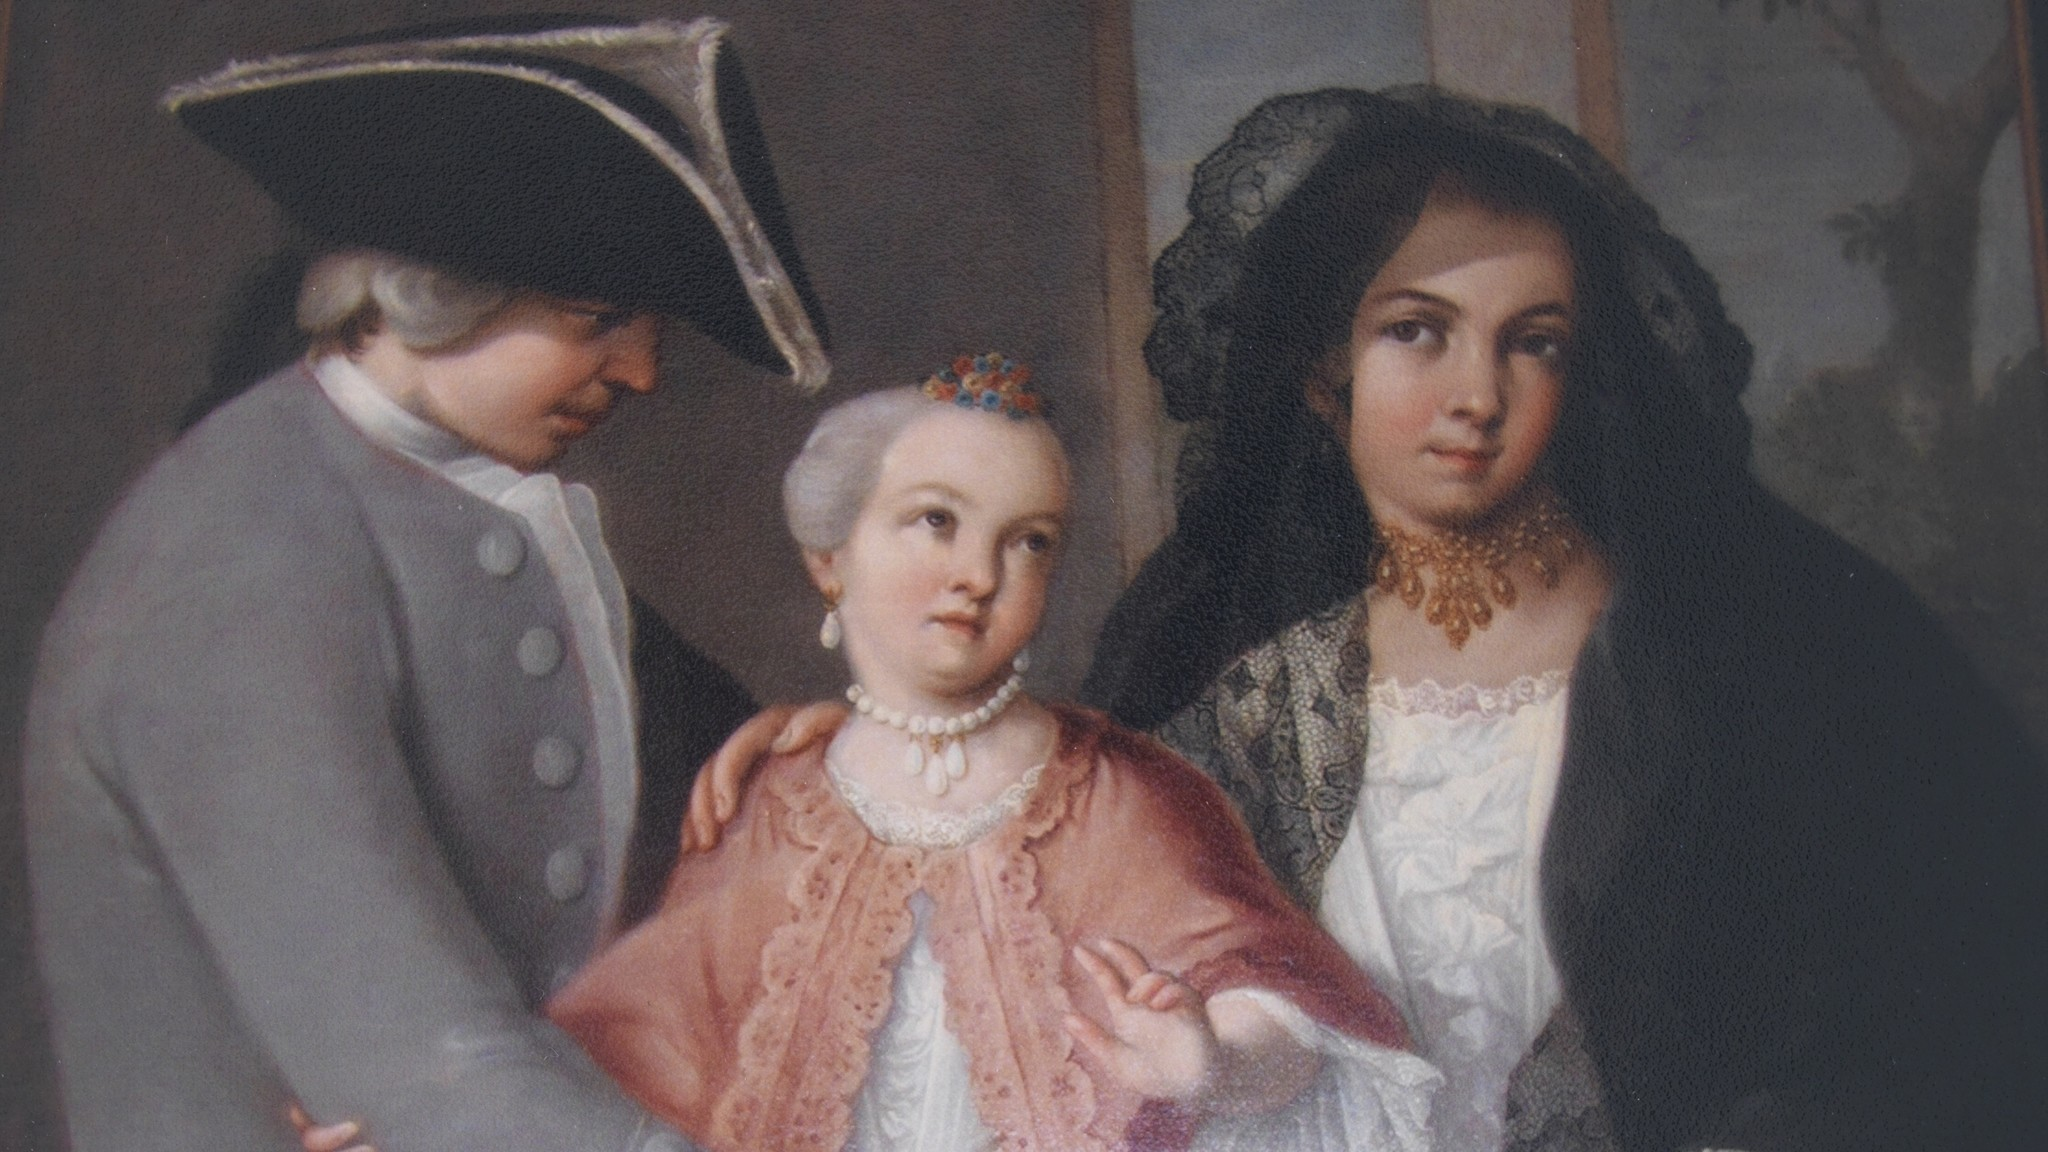 A masterpiece of Baroque painting, missing for more than a century, is hiding somewhere in L.A.